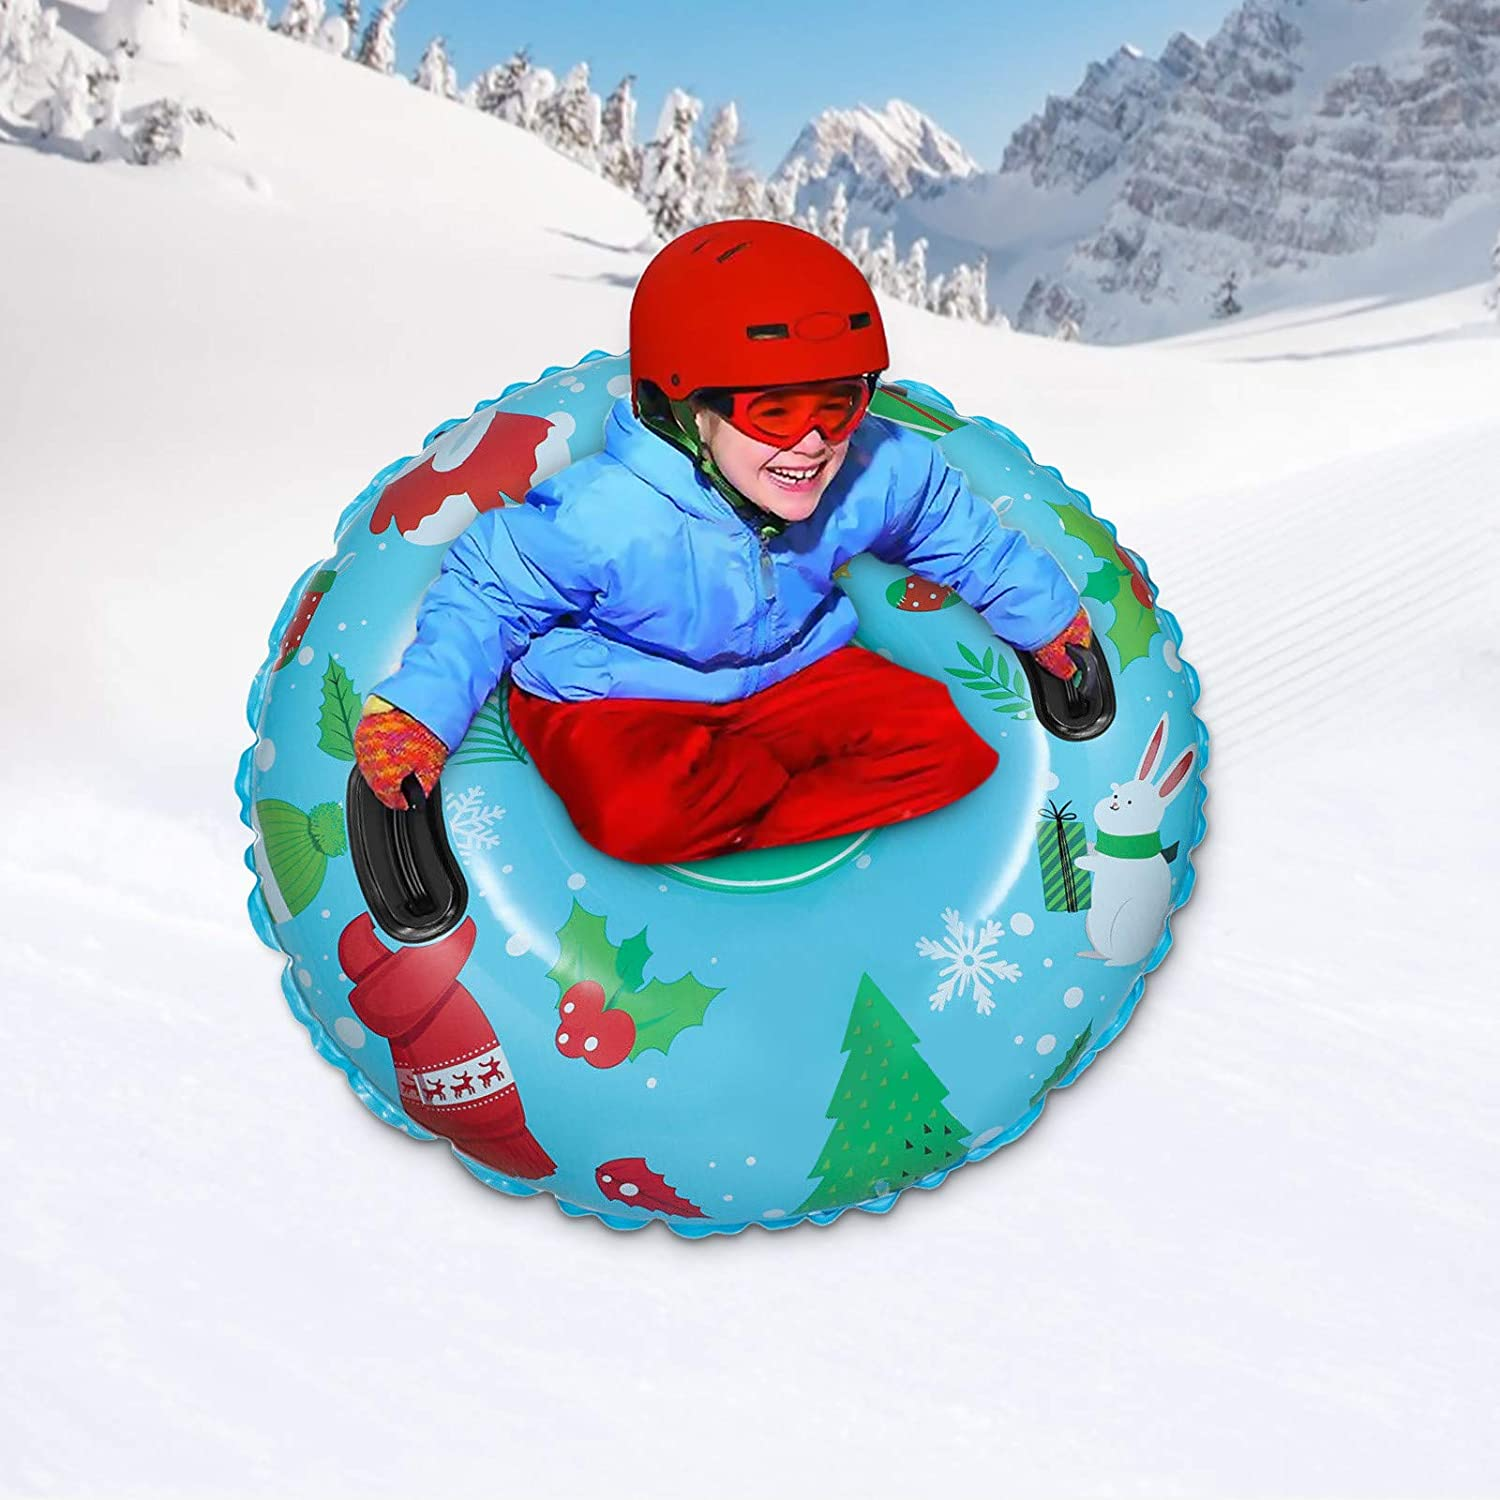 PHUNAPY Extra Large 47 Inch Snow Tube Sled for Kids and Adults,The Winter Inflatable Snow Tube,Great Inflatable Snow Tubes for Winter Fun and Family Activities